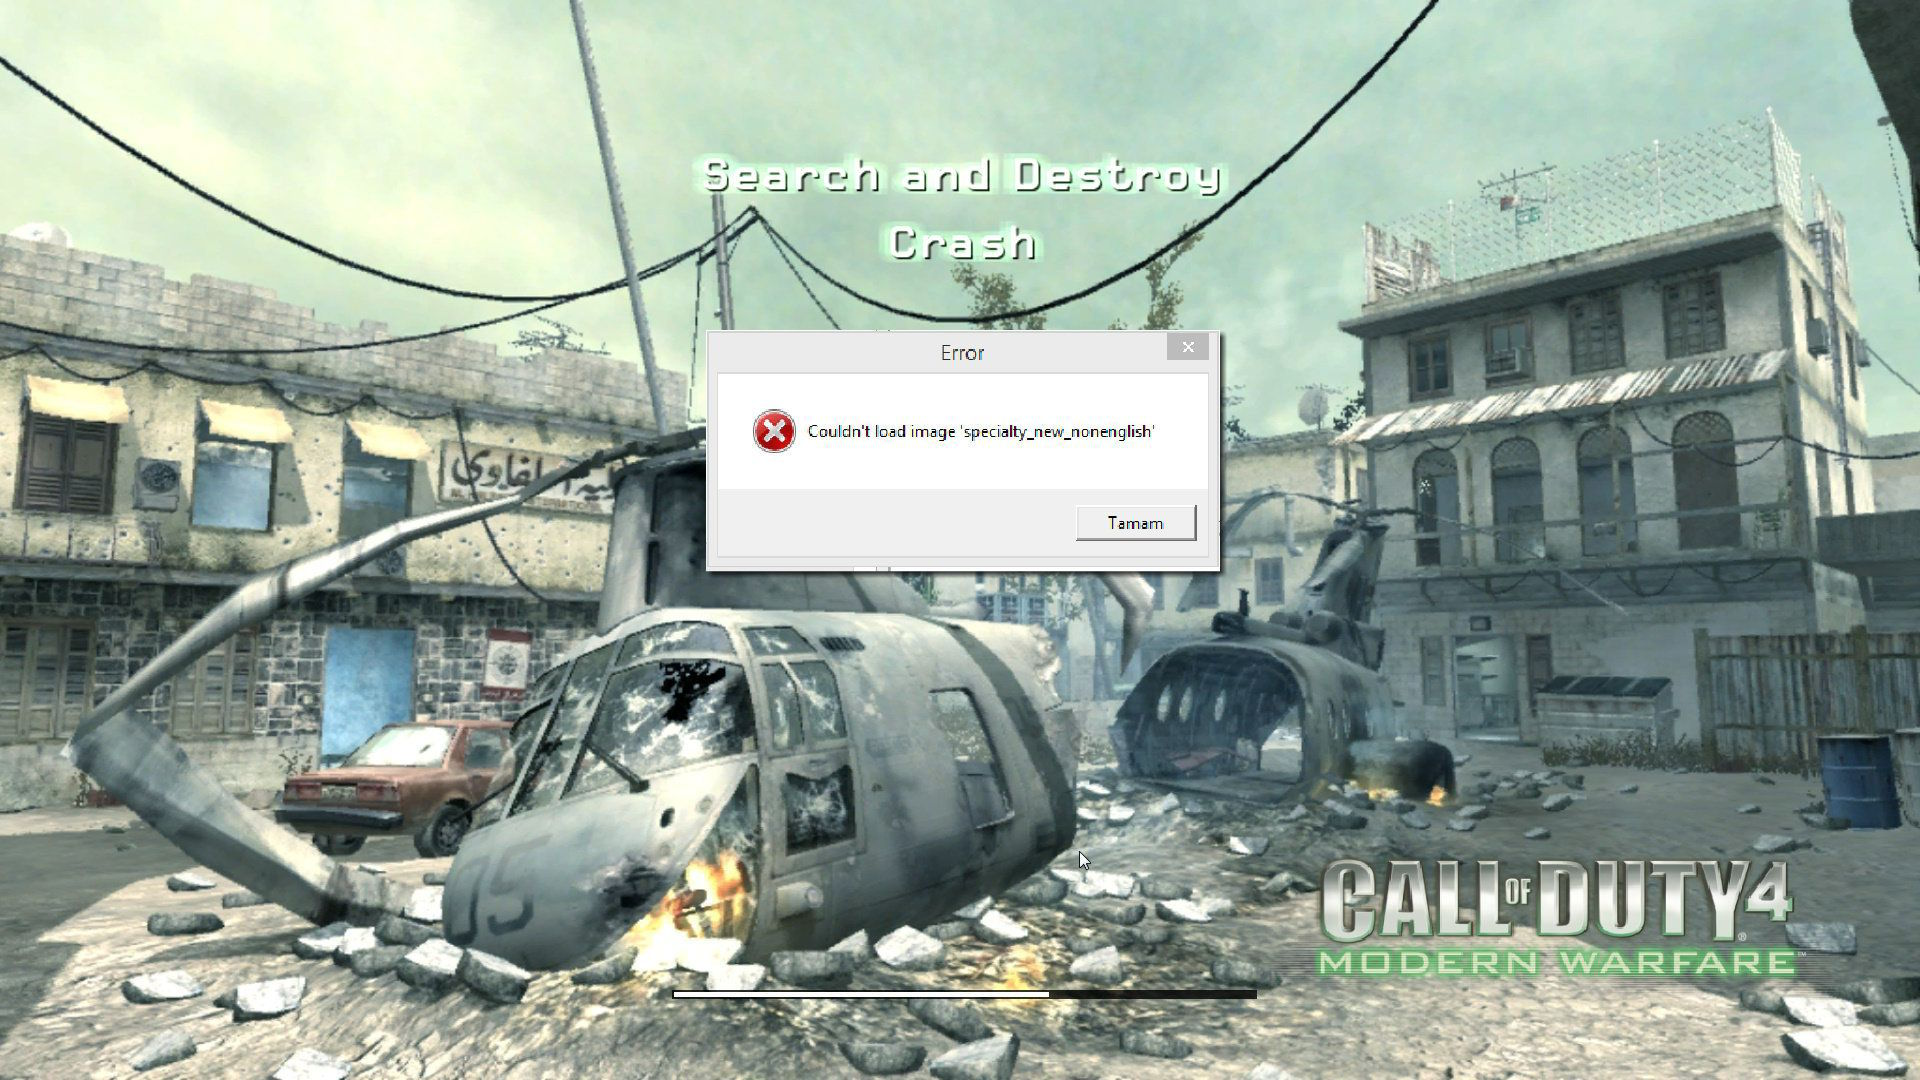 Call of Duty 4 Couldn't load image specialty_new_nonenglish Hatası